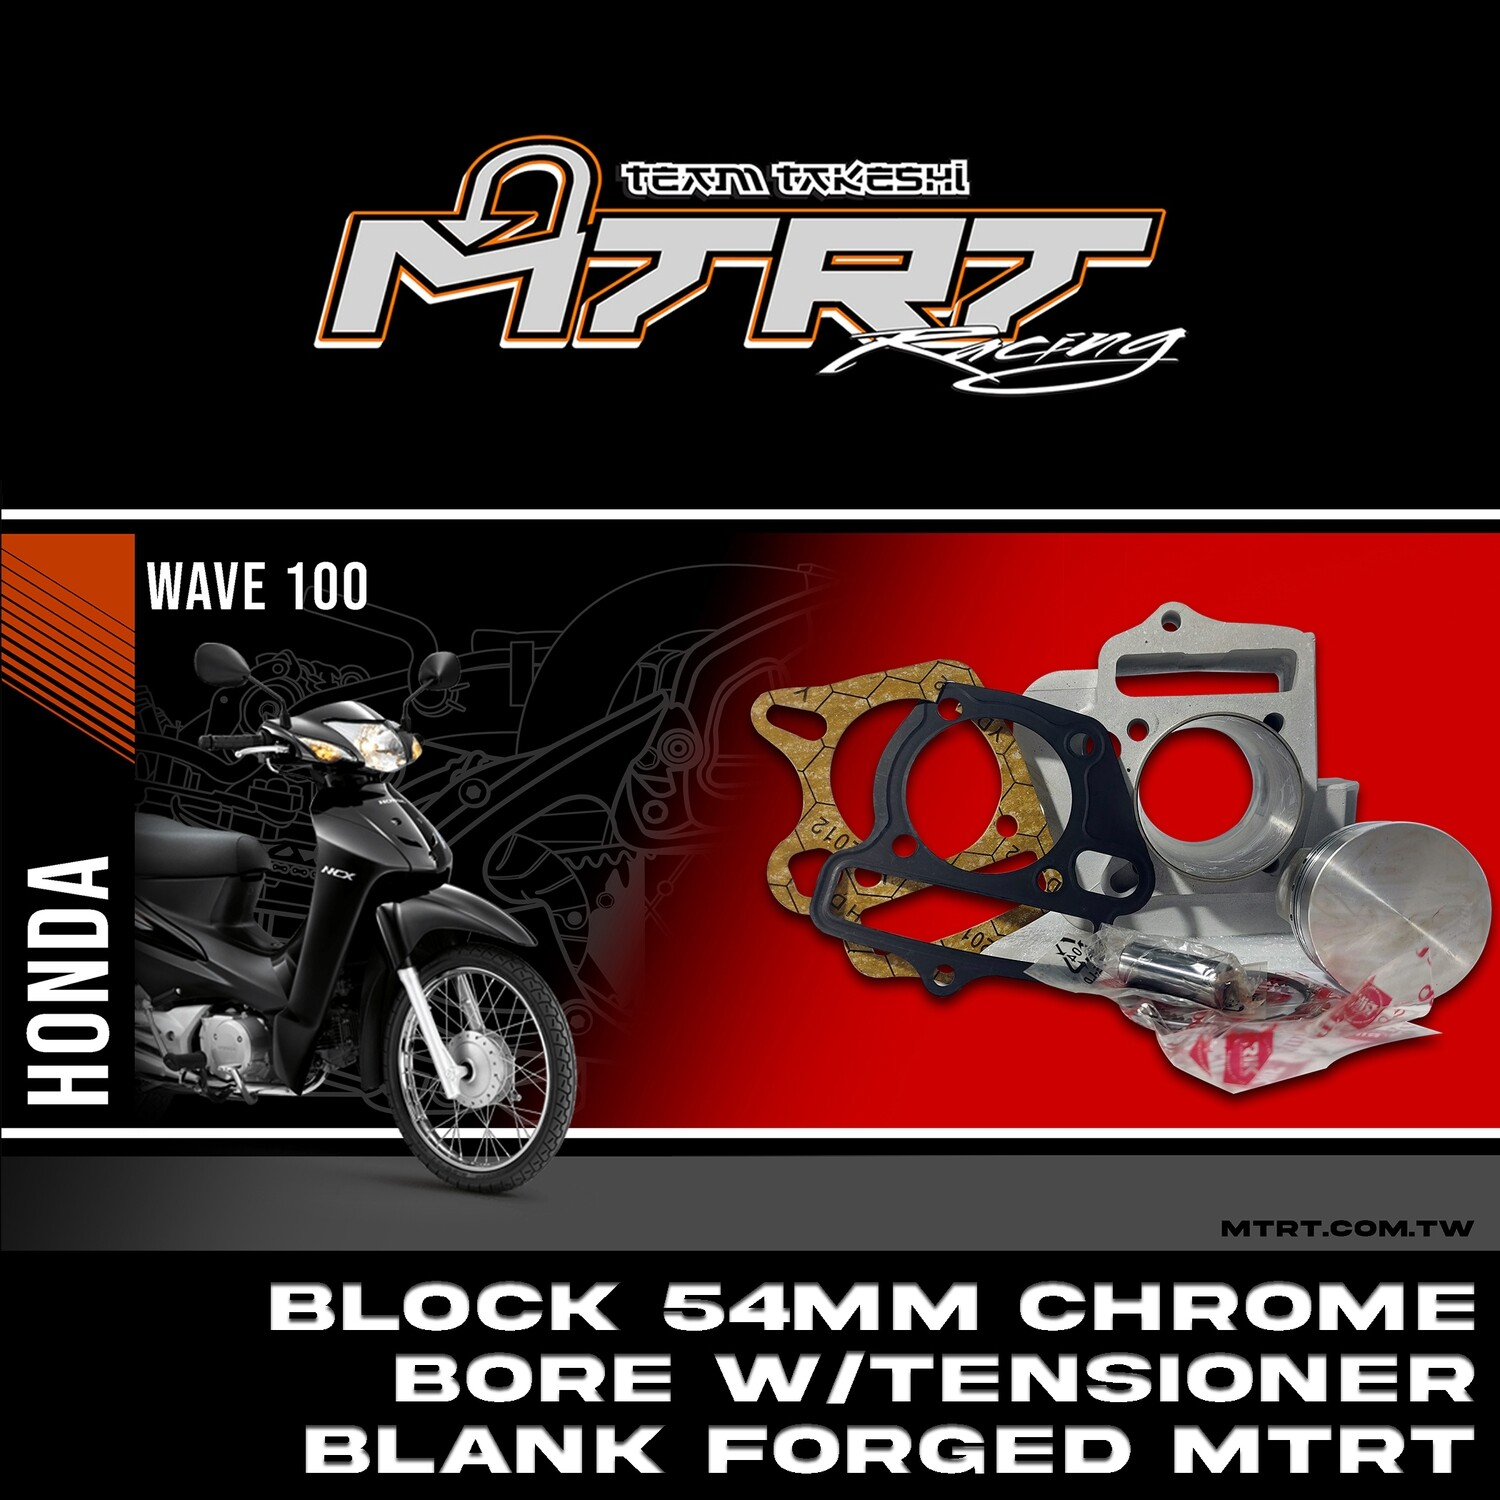 BLOCK WAVE100 54MM Chromebore w/tensioner BLANK Forged piston MTRT